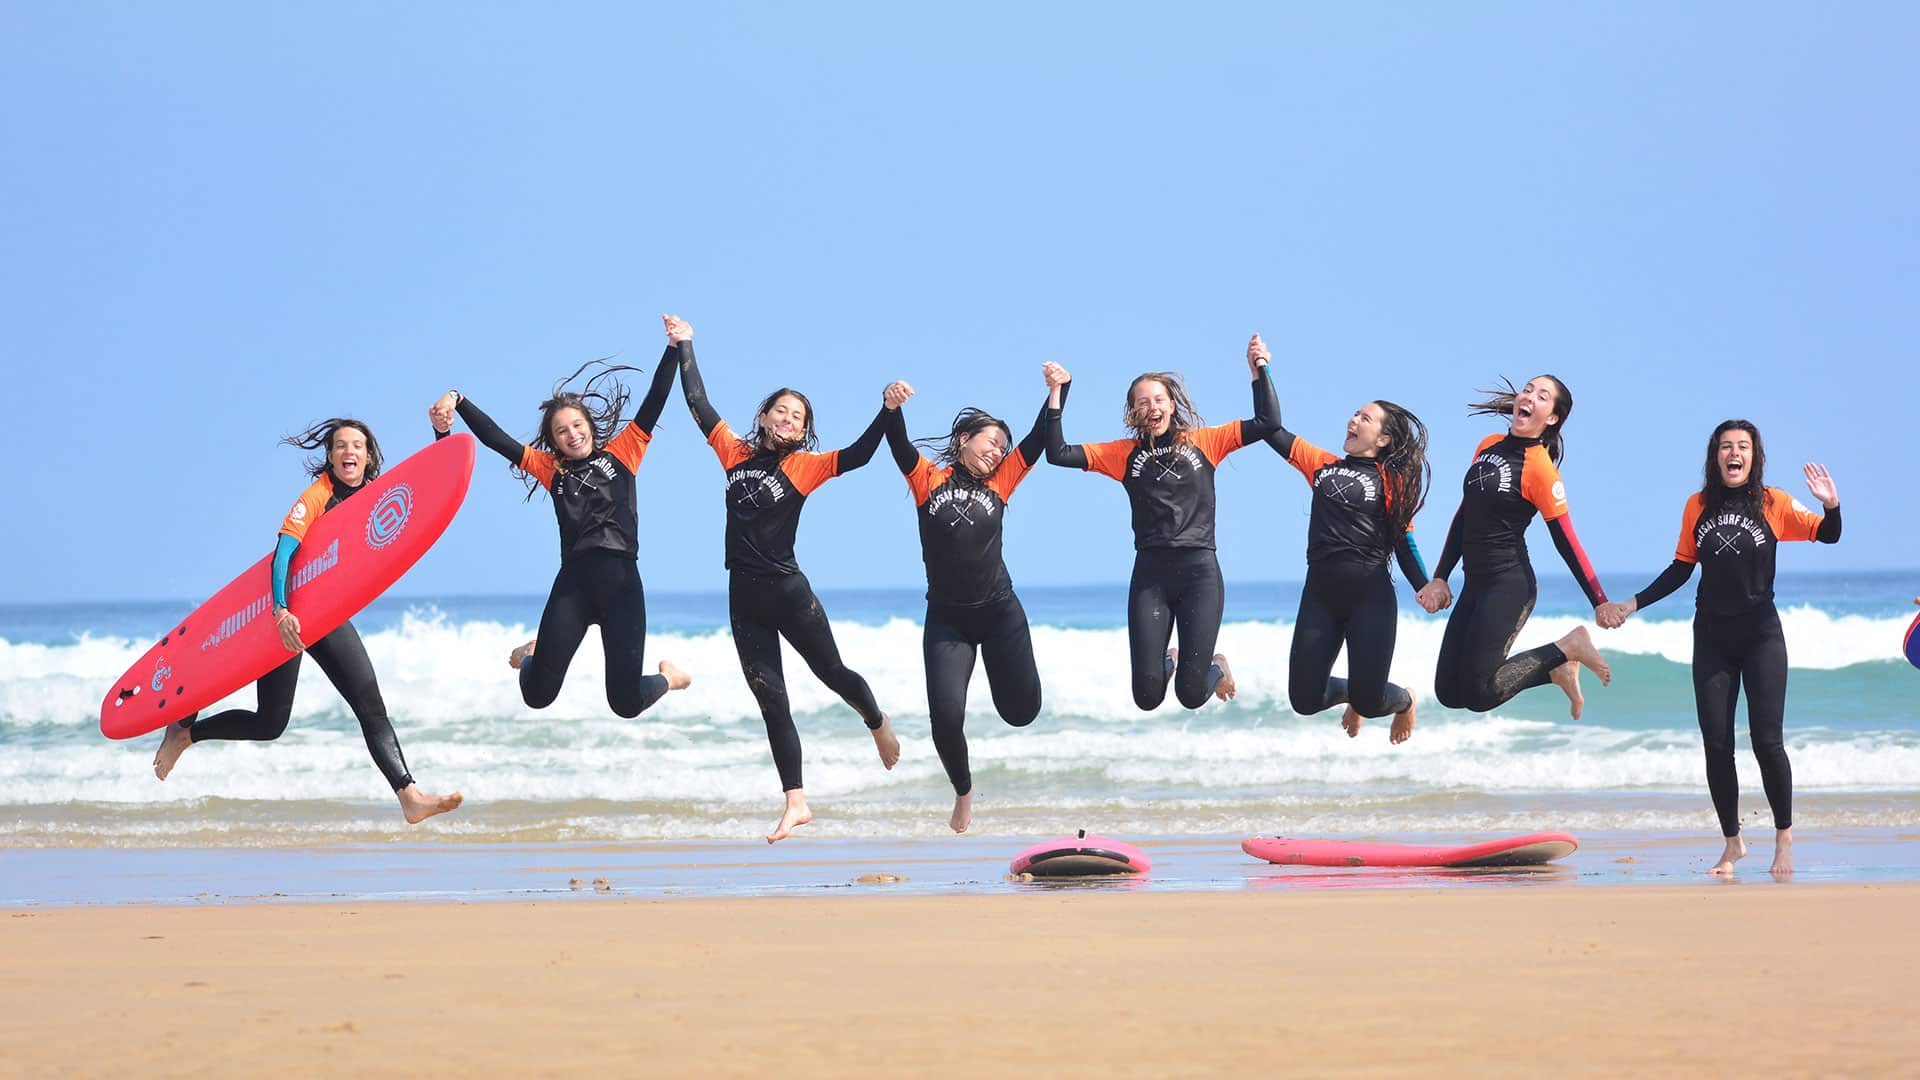 Surf camps verano - escuela de surf & camp